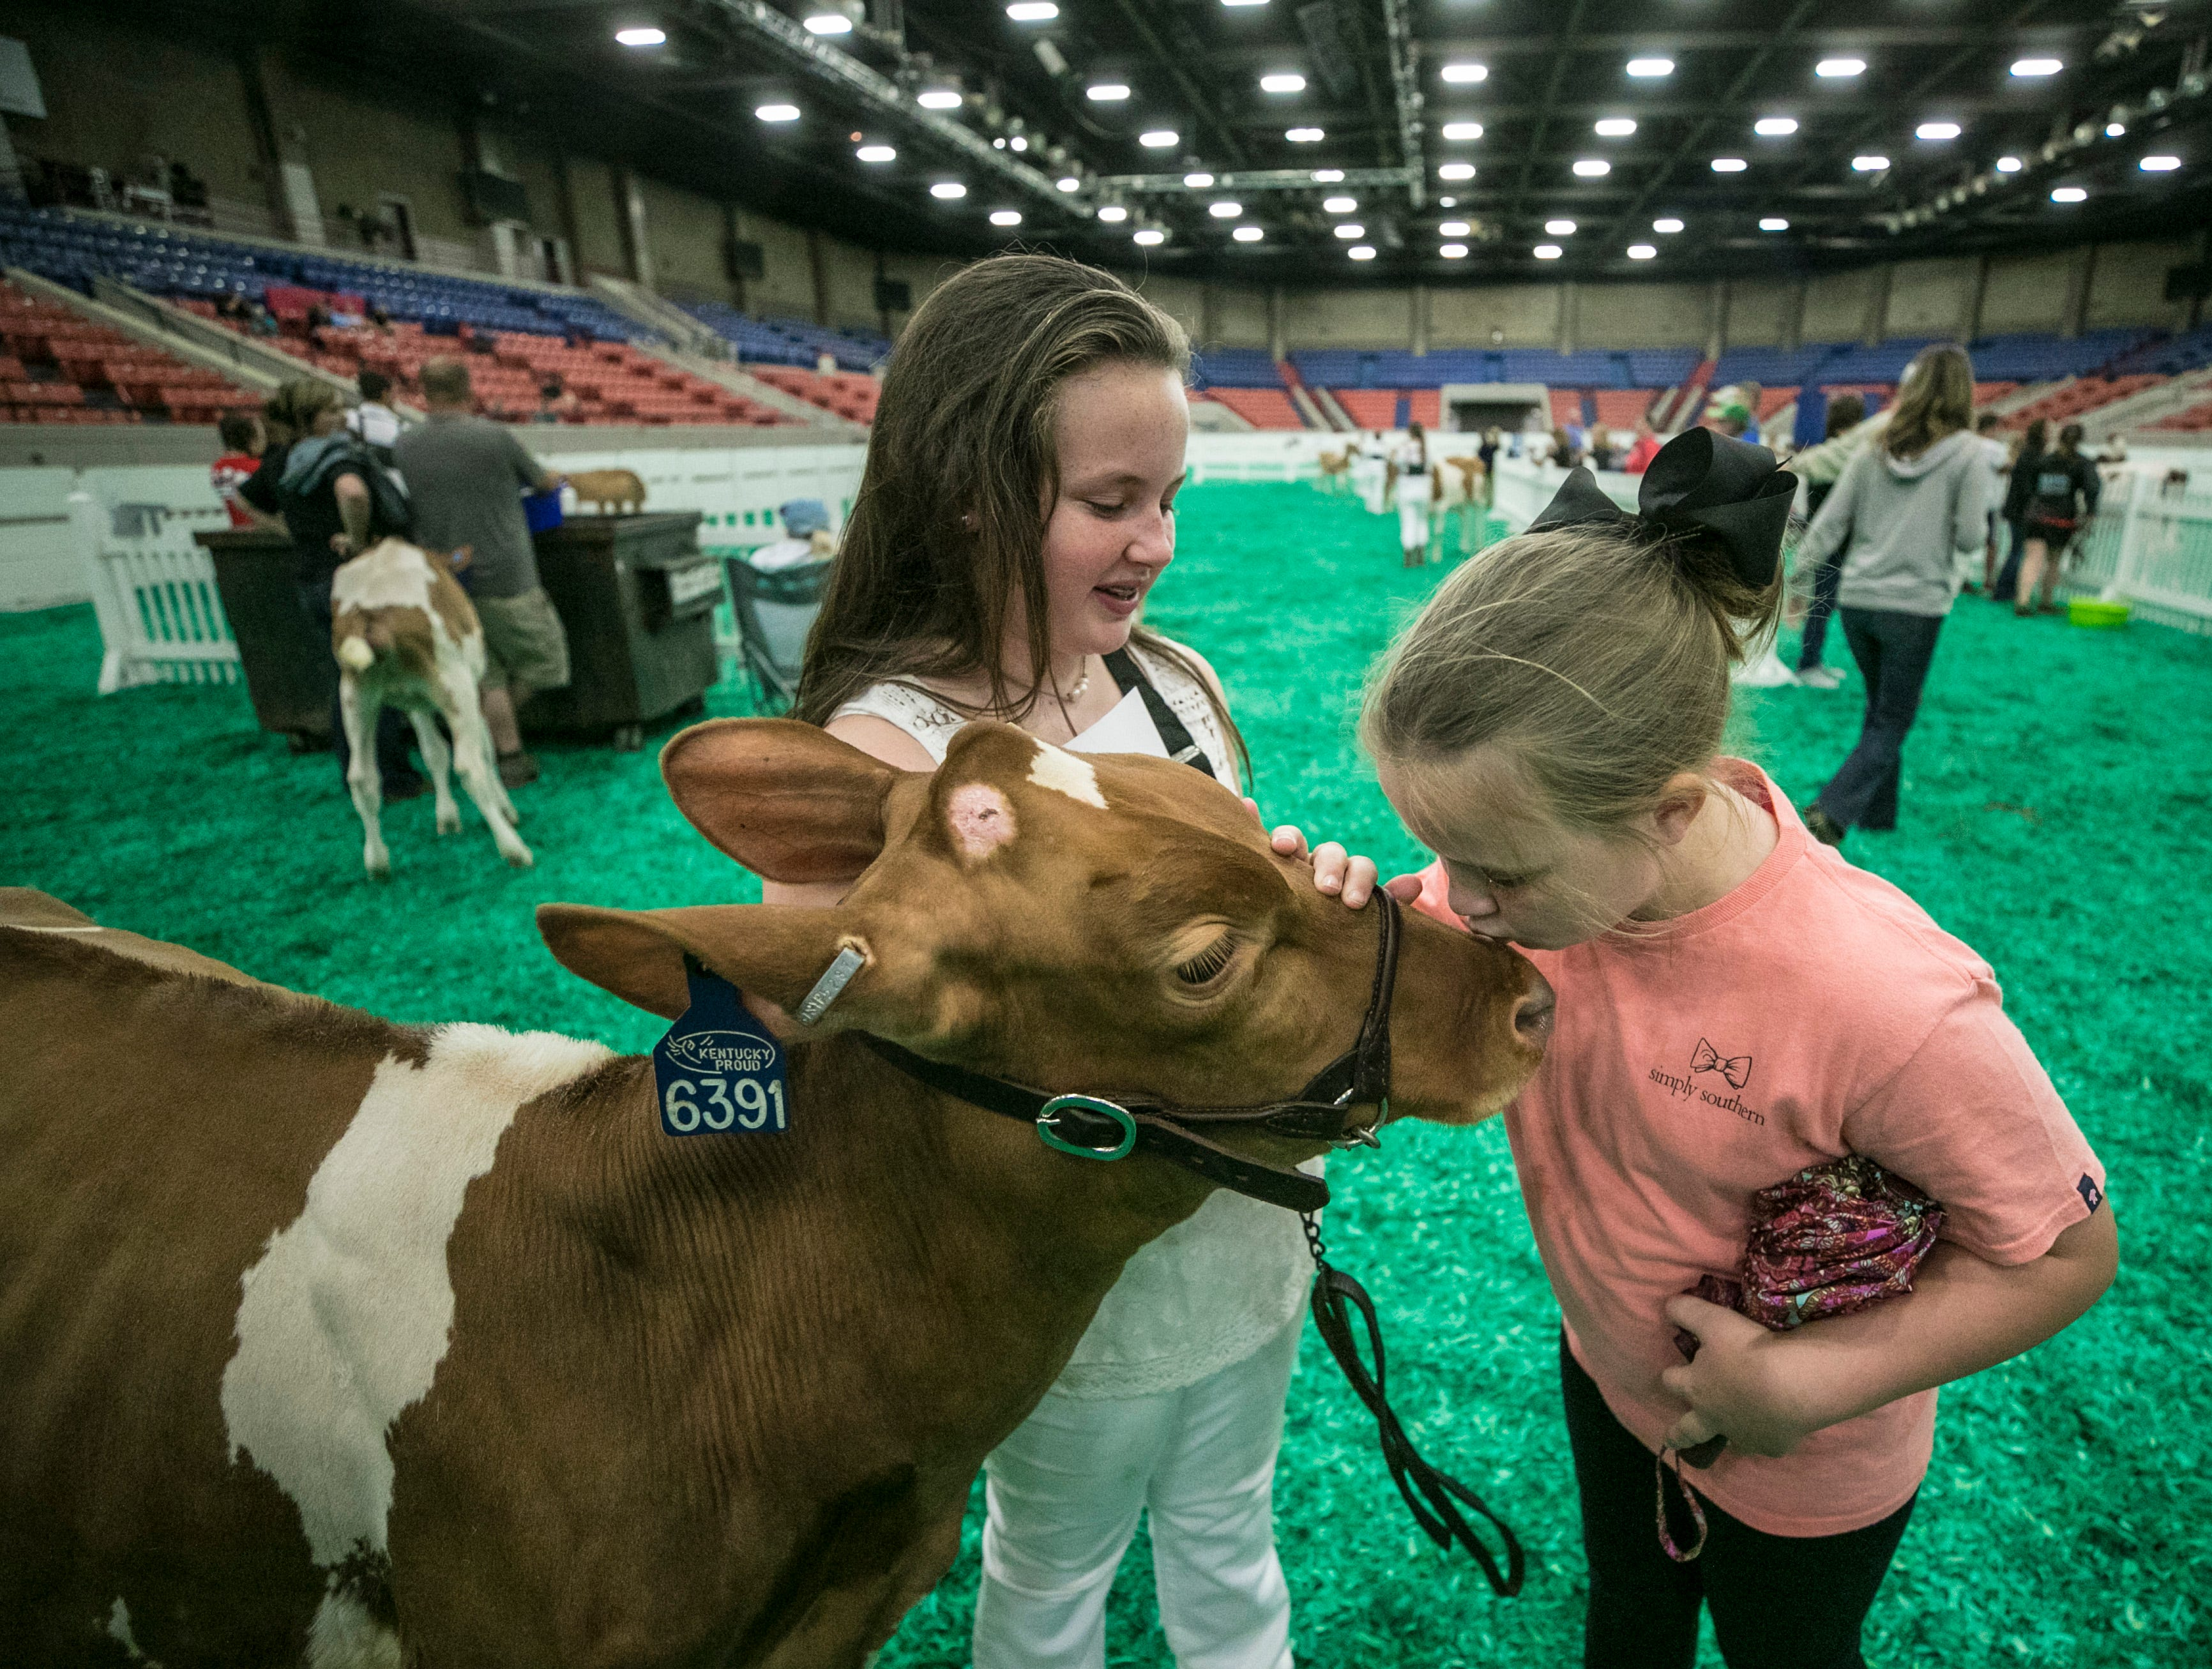 Molly Shewmaker laughs as  Megan Shewmaker kisses Marli, a dairy cow, outside the judging area on the opening day of the 2018 Kentucky State Fair.